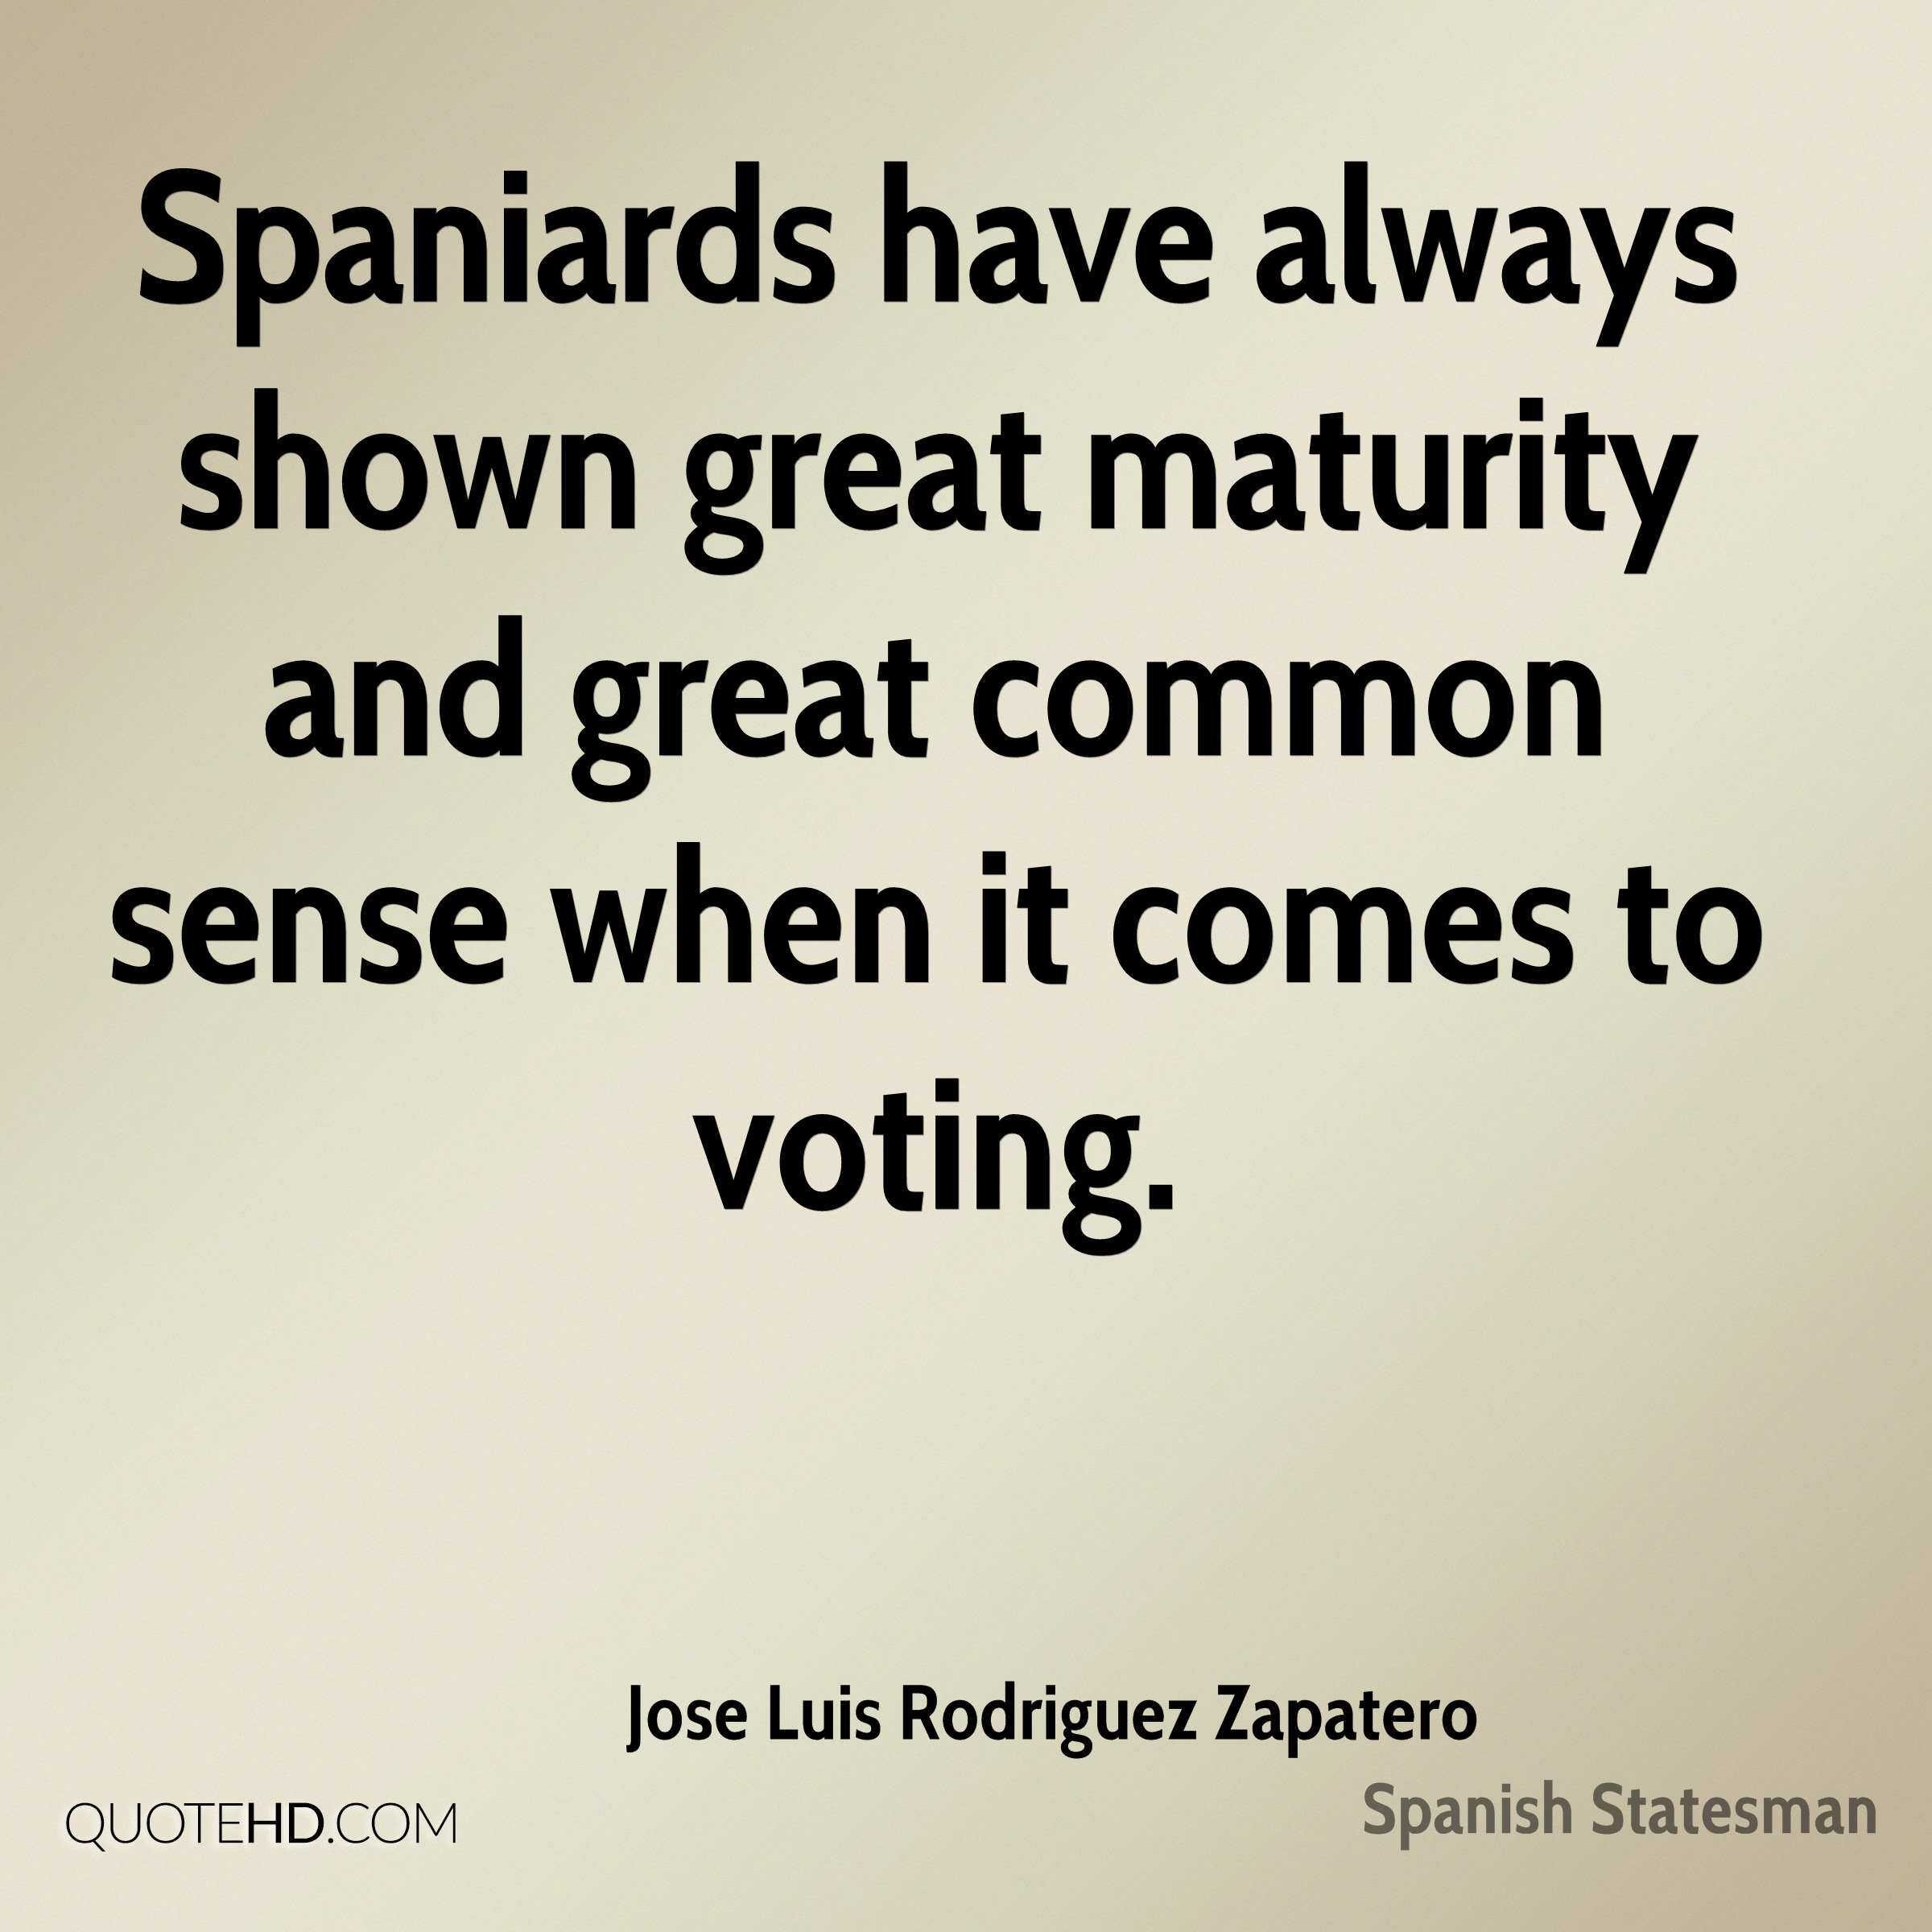 Spaniards have always shown great maturity and great common sense when it comes to voting.